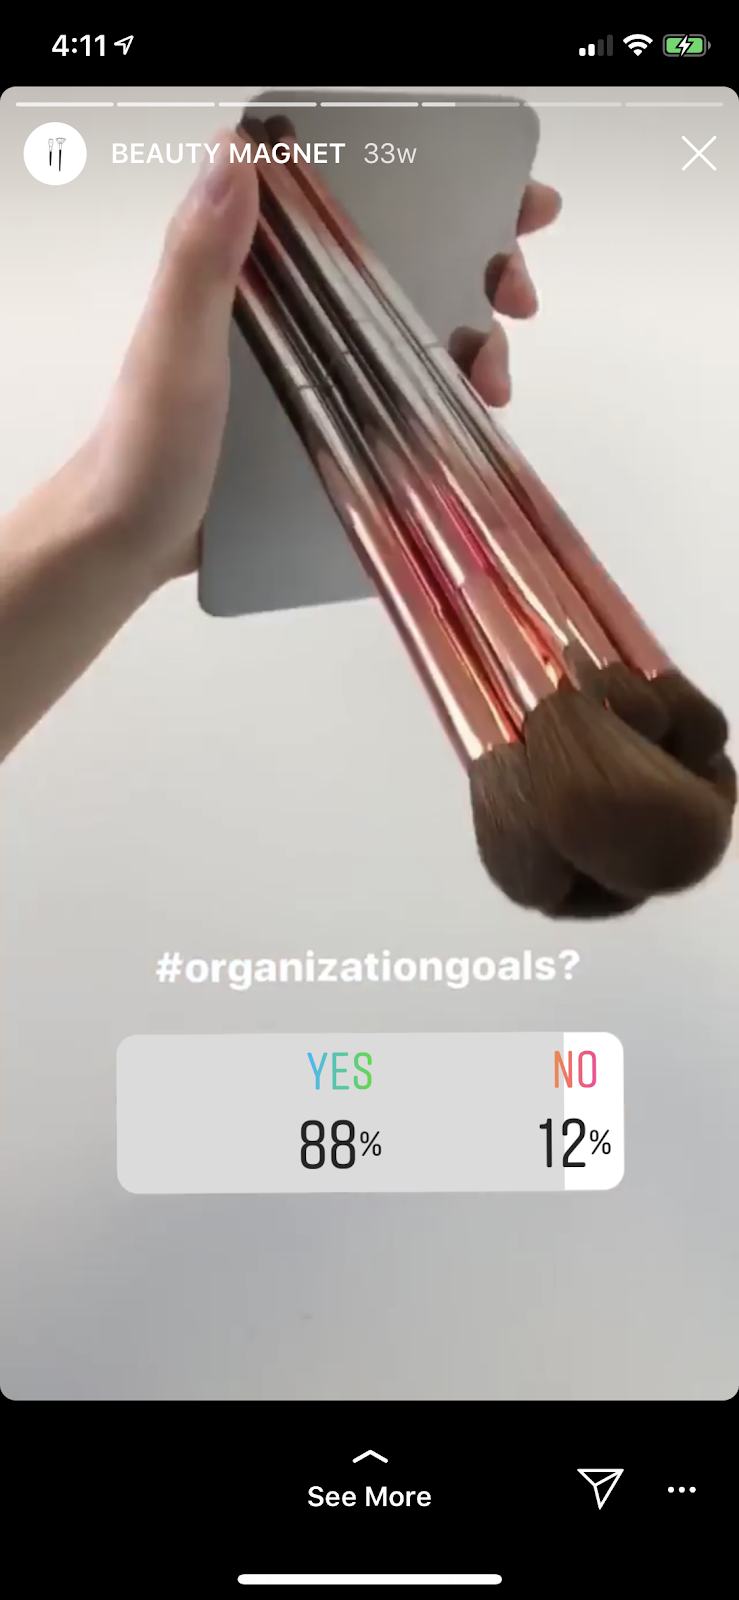 Instagram poll ideas from sephora